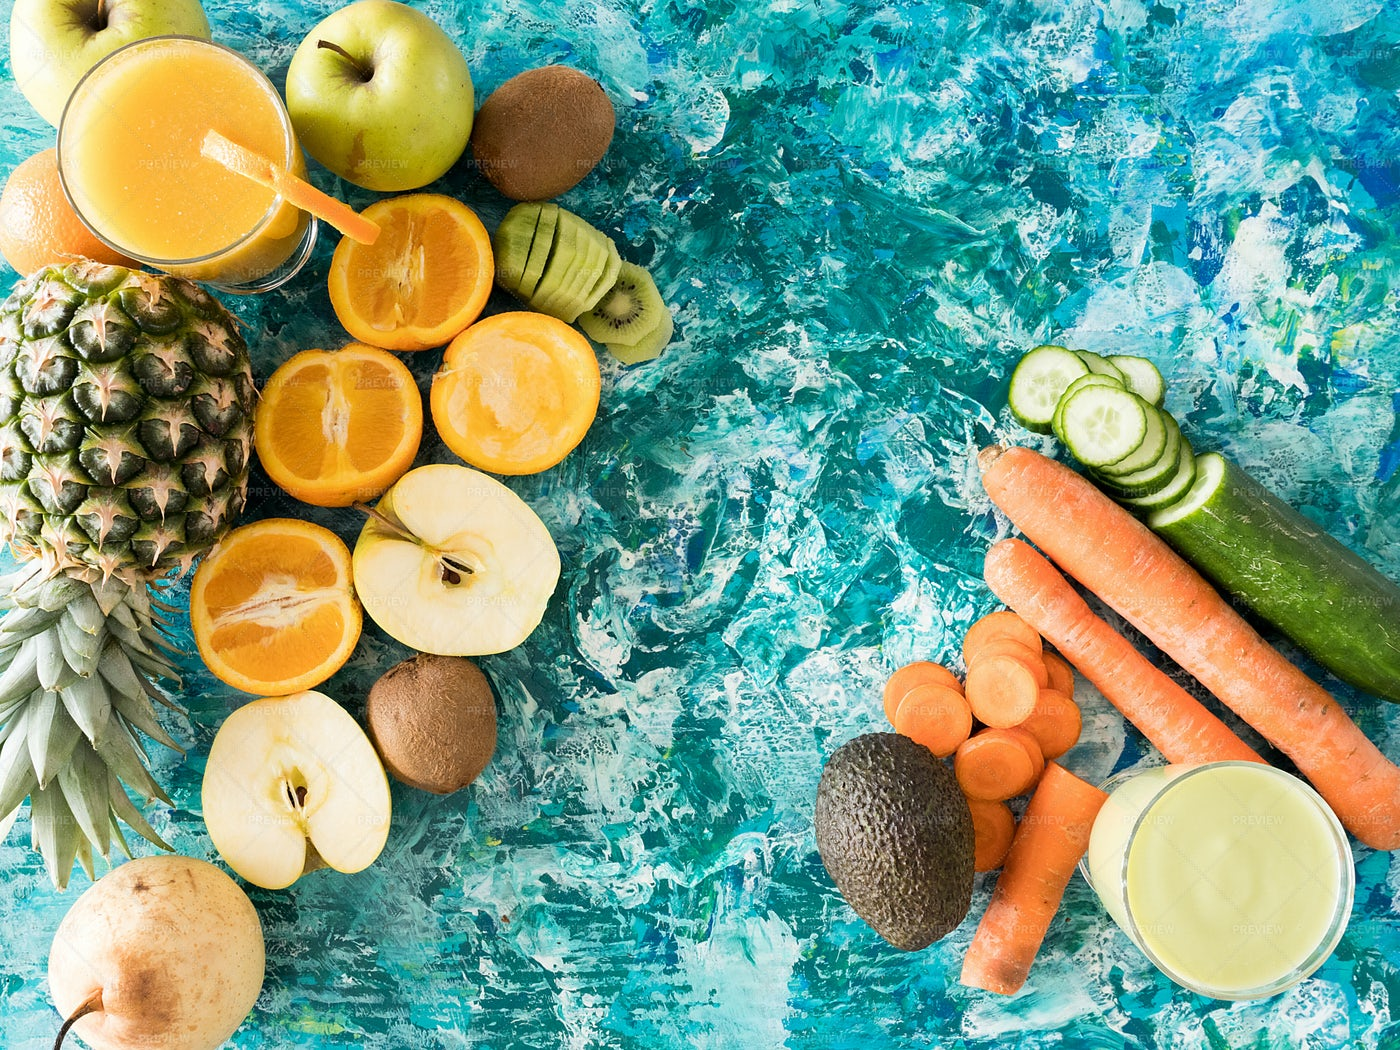 Glasses With Detox Juice Next To Fruits: Stock Photos